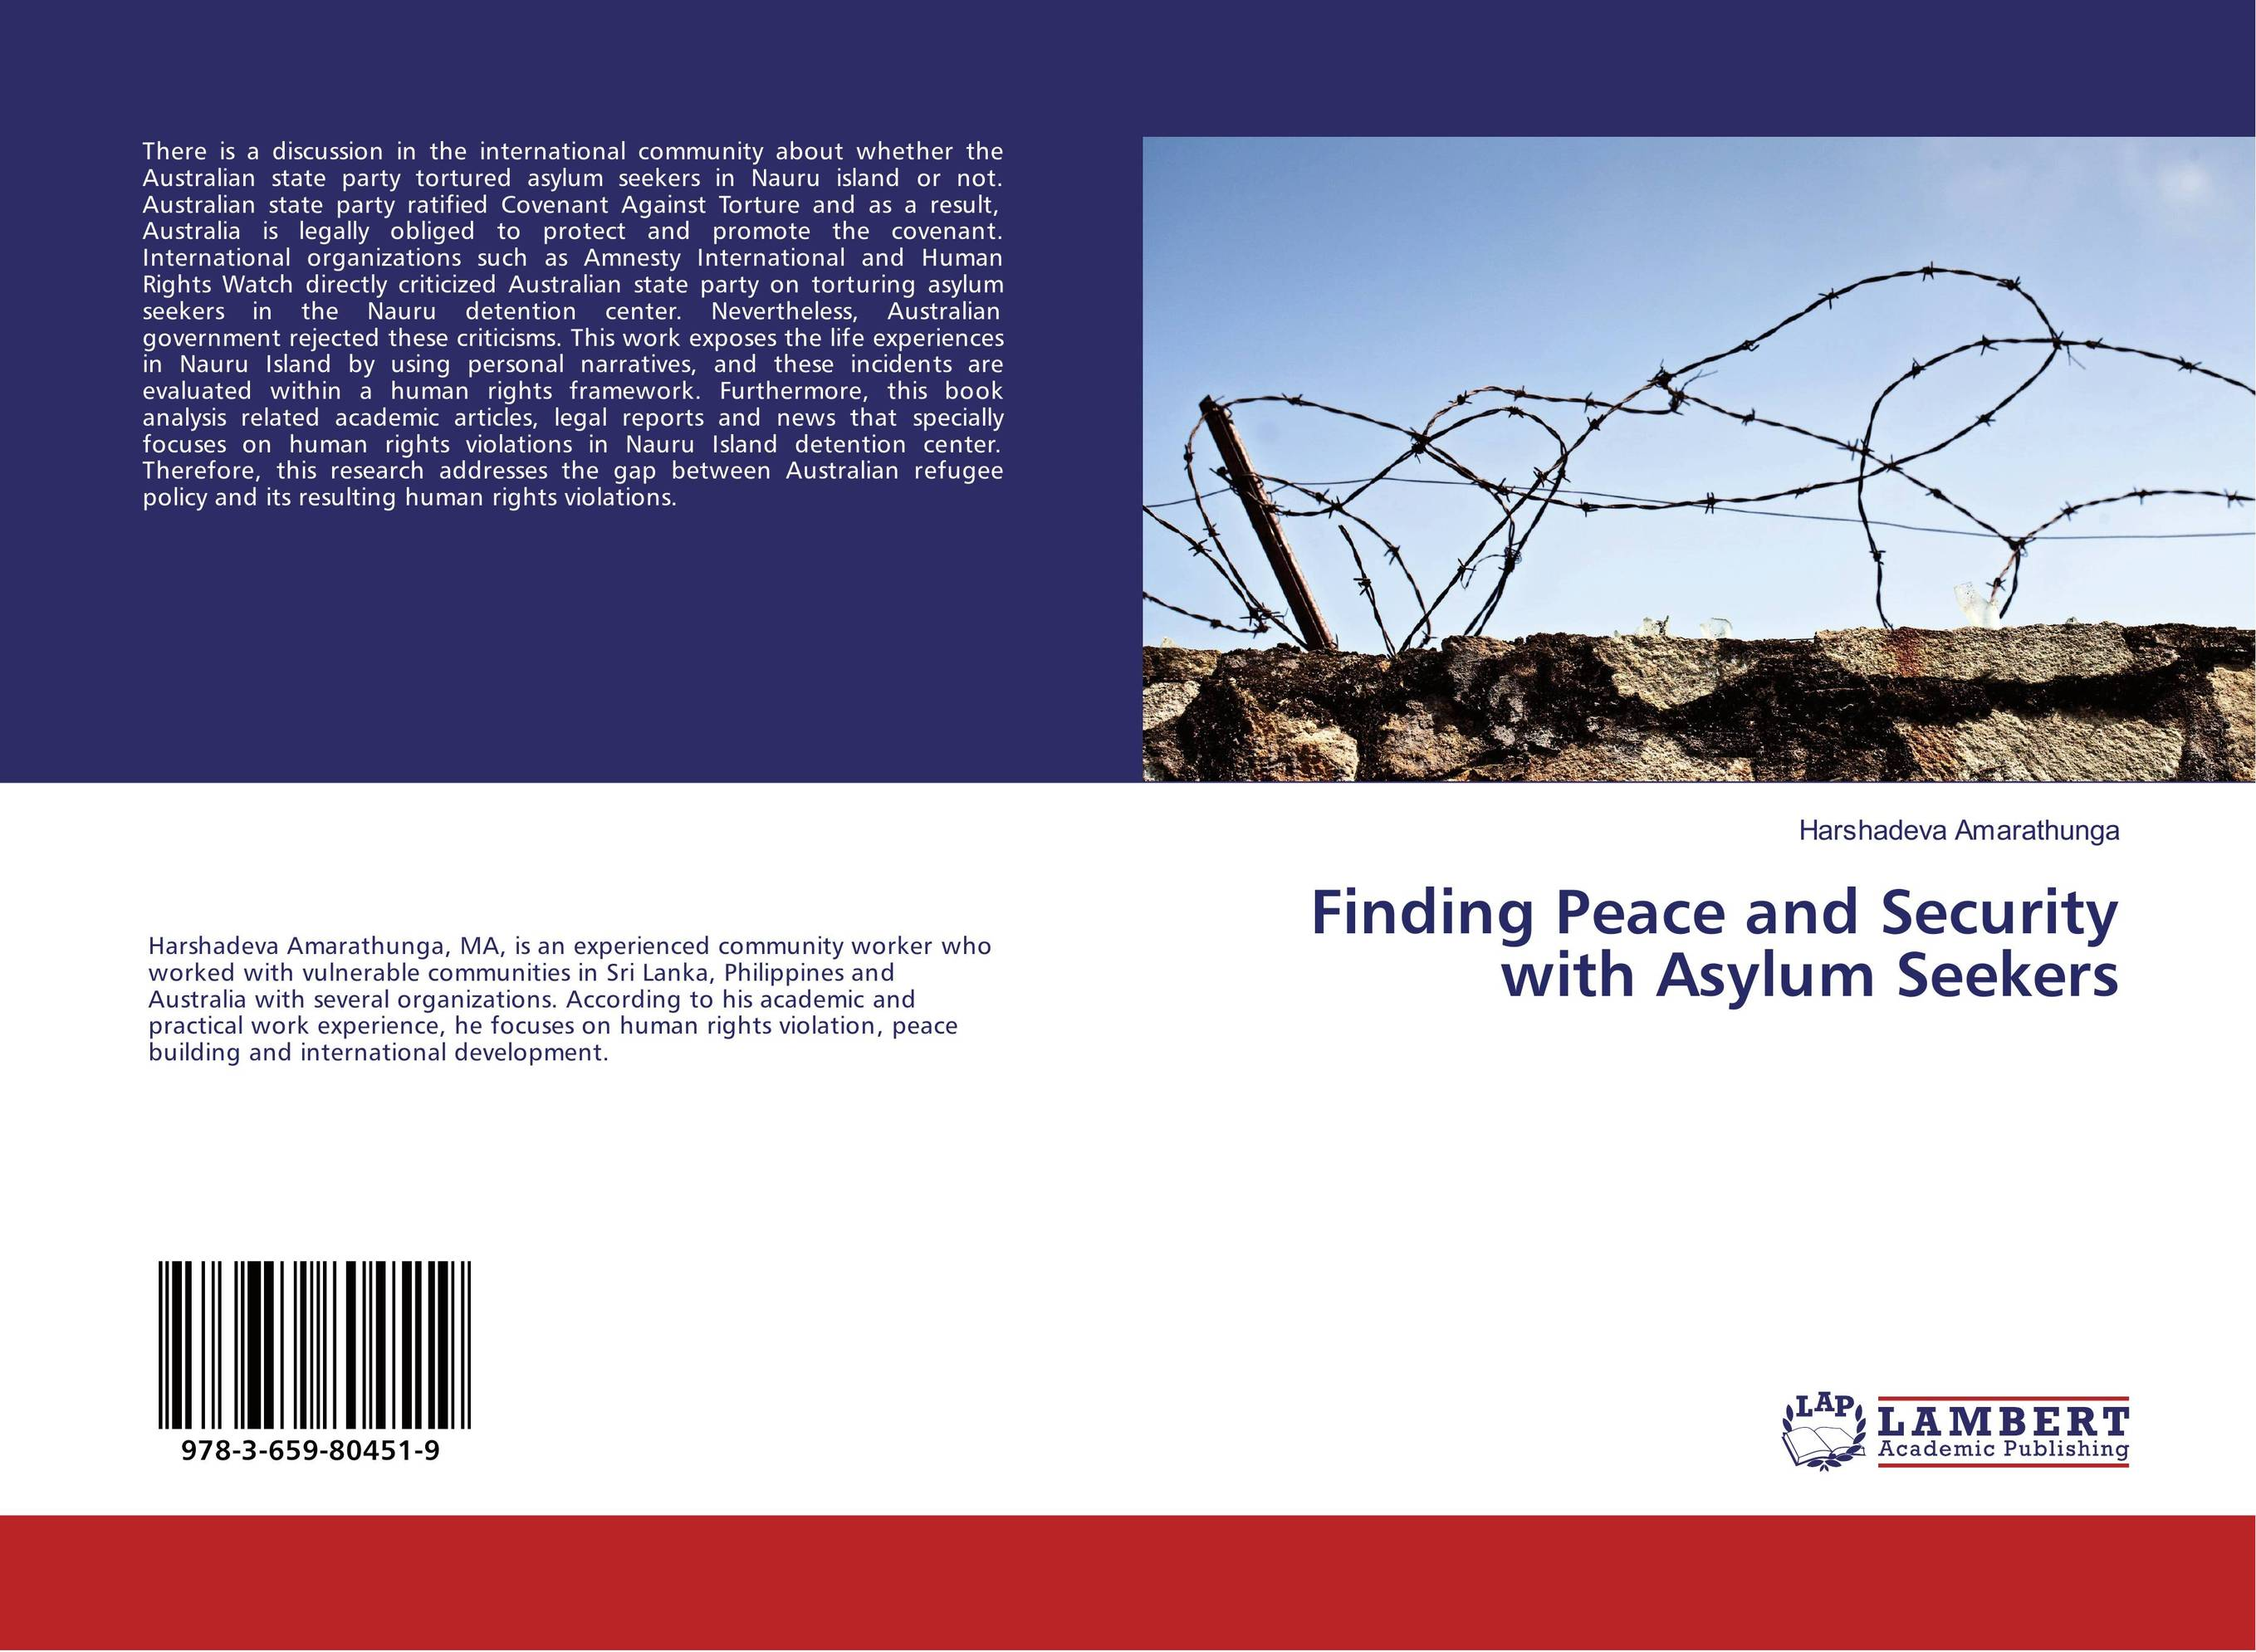 Finding Peace and Security with Asylum Seekers